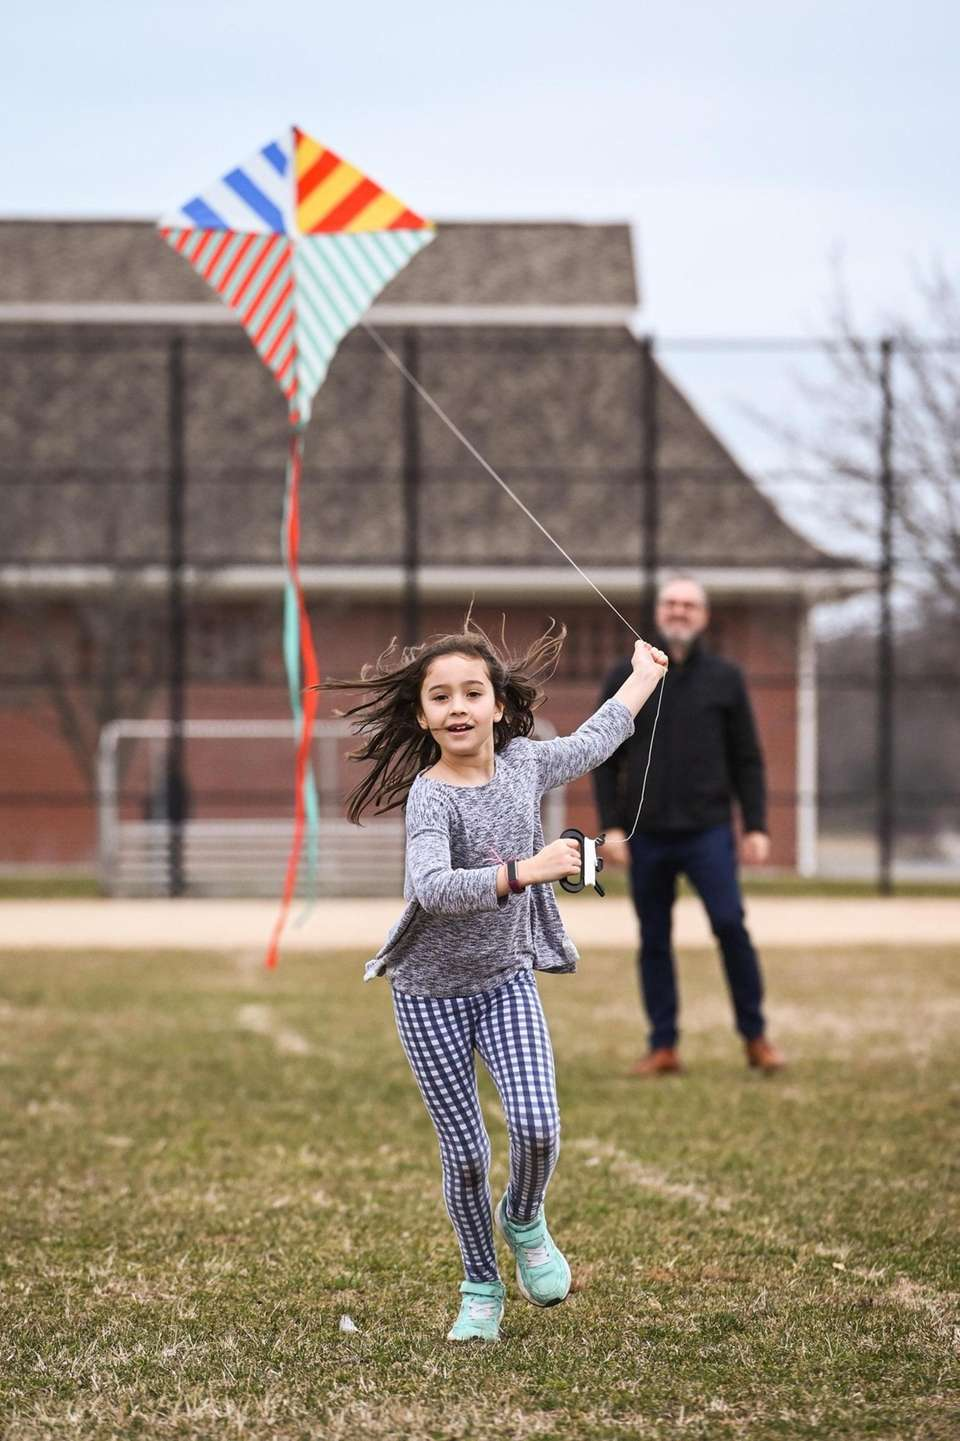 Norah Wouters Almeida, 8, of Locust Valley, catches